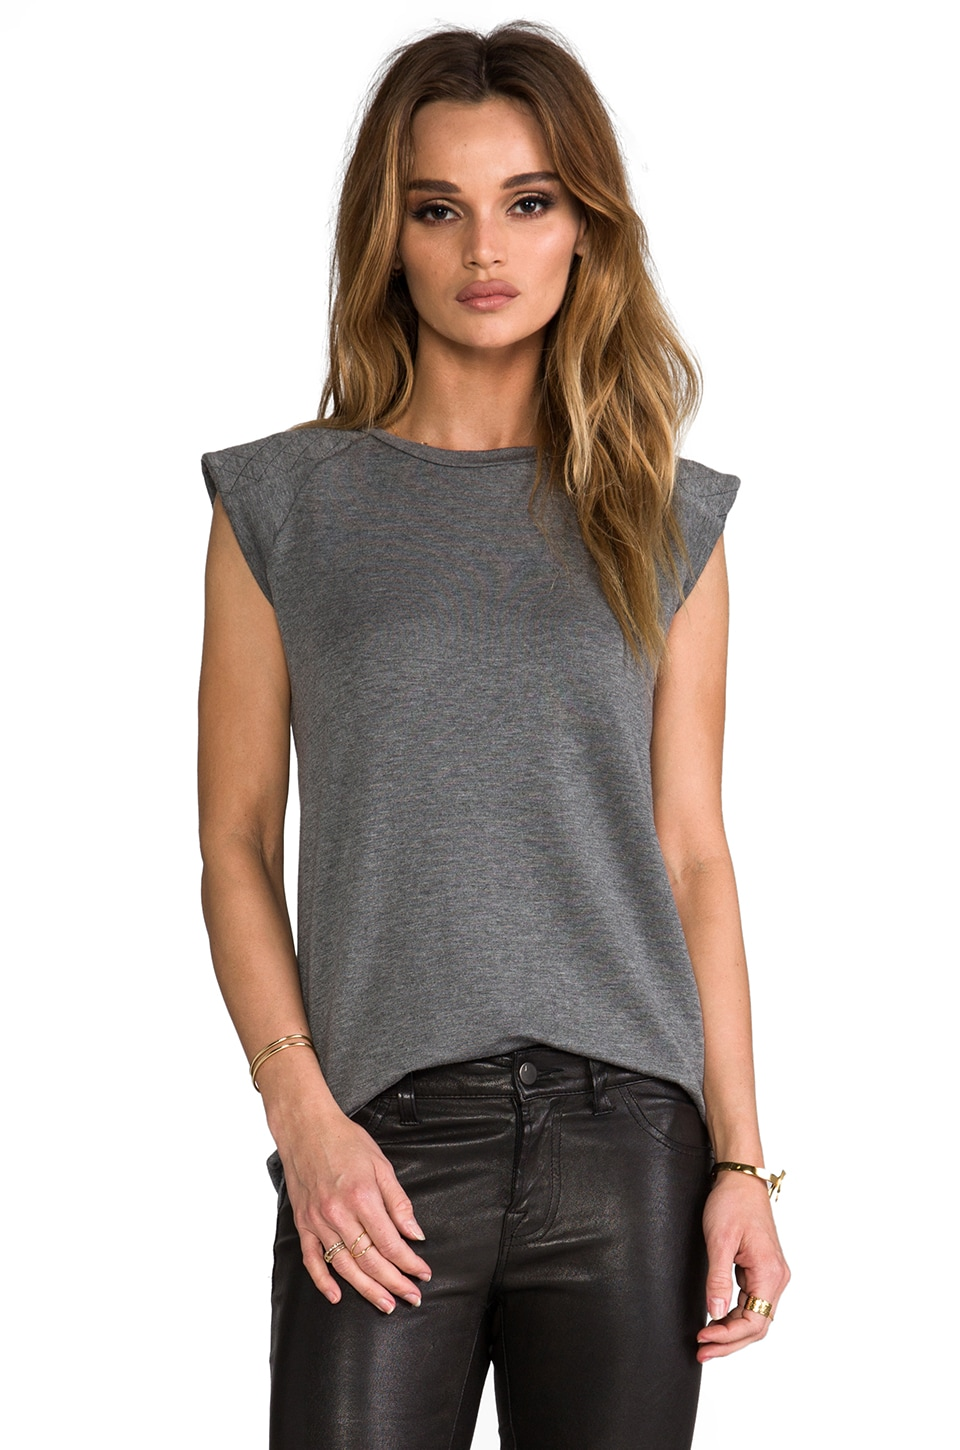 sen Lara Top in Heather Grey